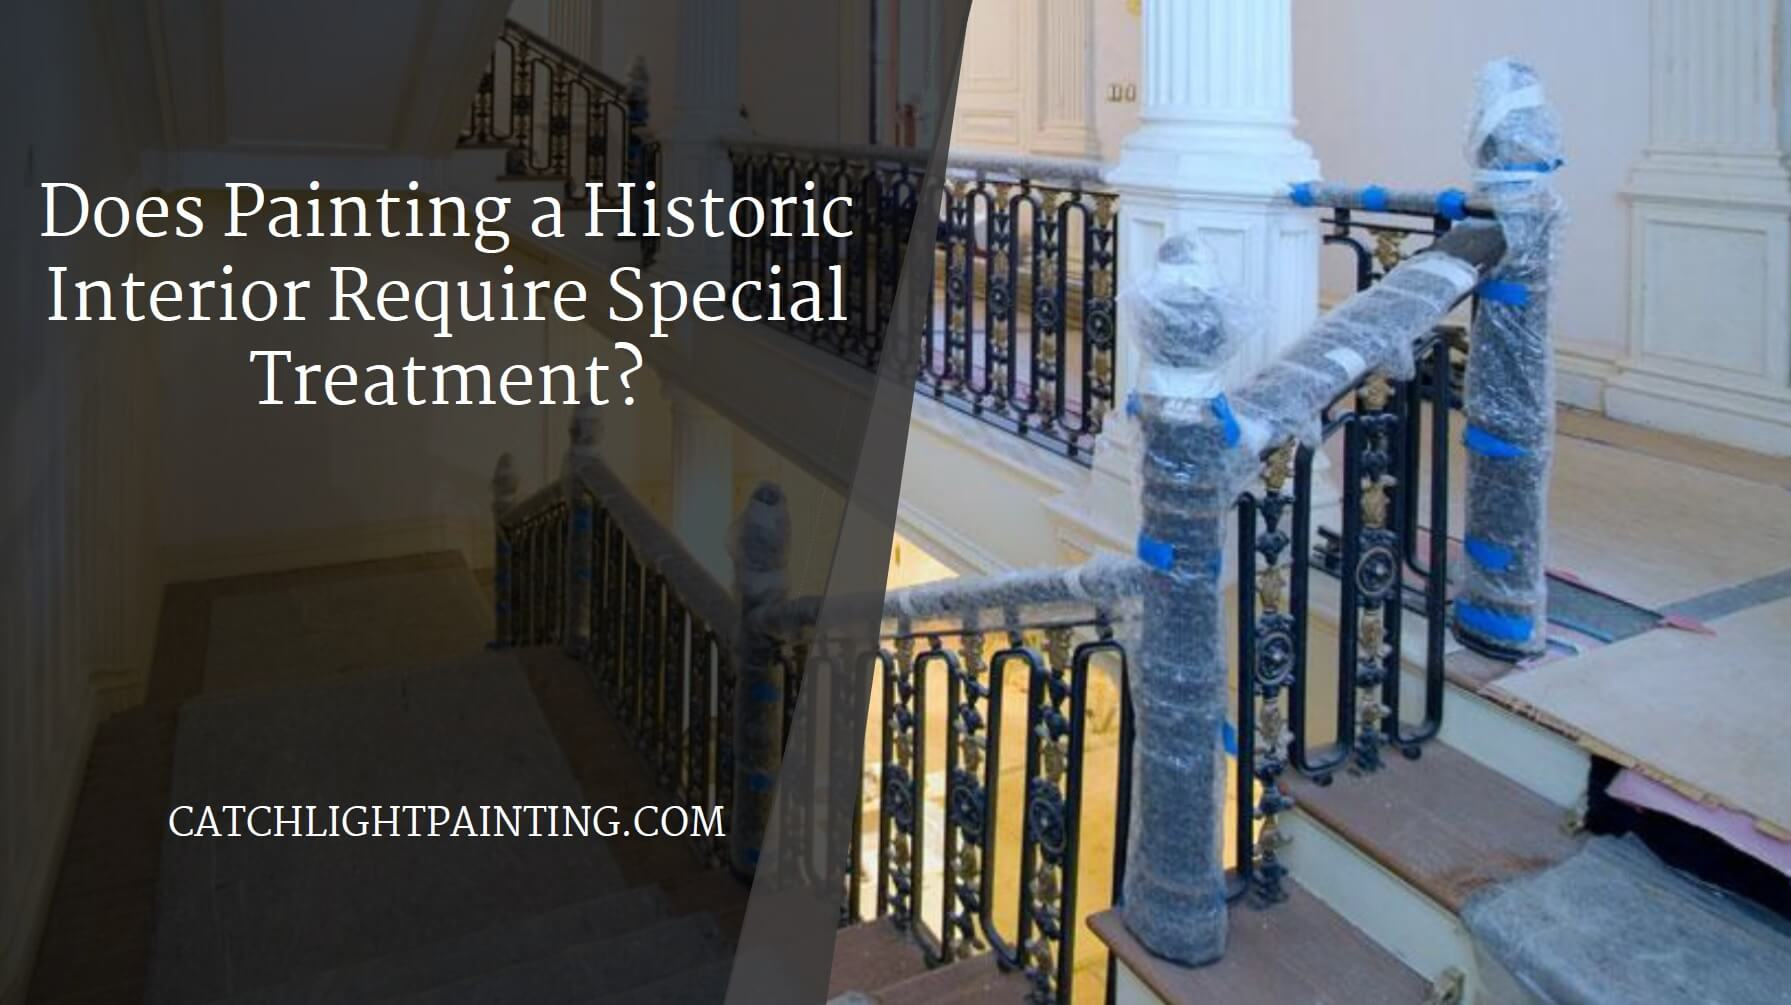 Does Painting a Historic Interior Require Special Treatment?